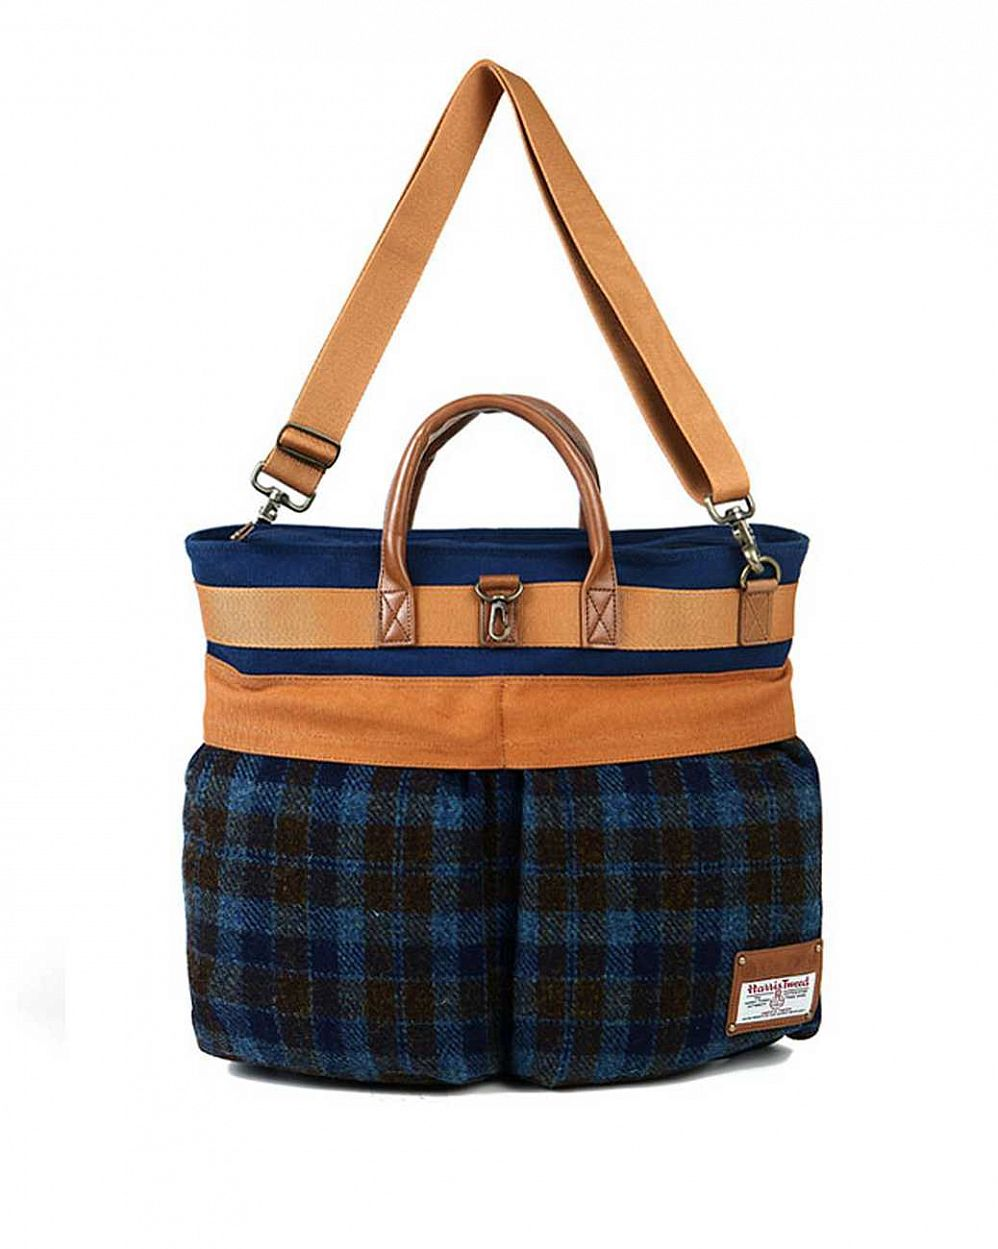 Сумка The earth Company Harris Tweed  (England) Helmet bag blue отзывы